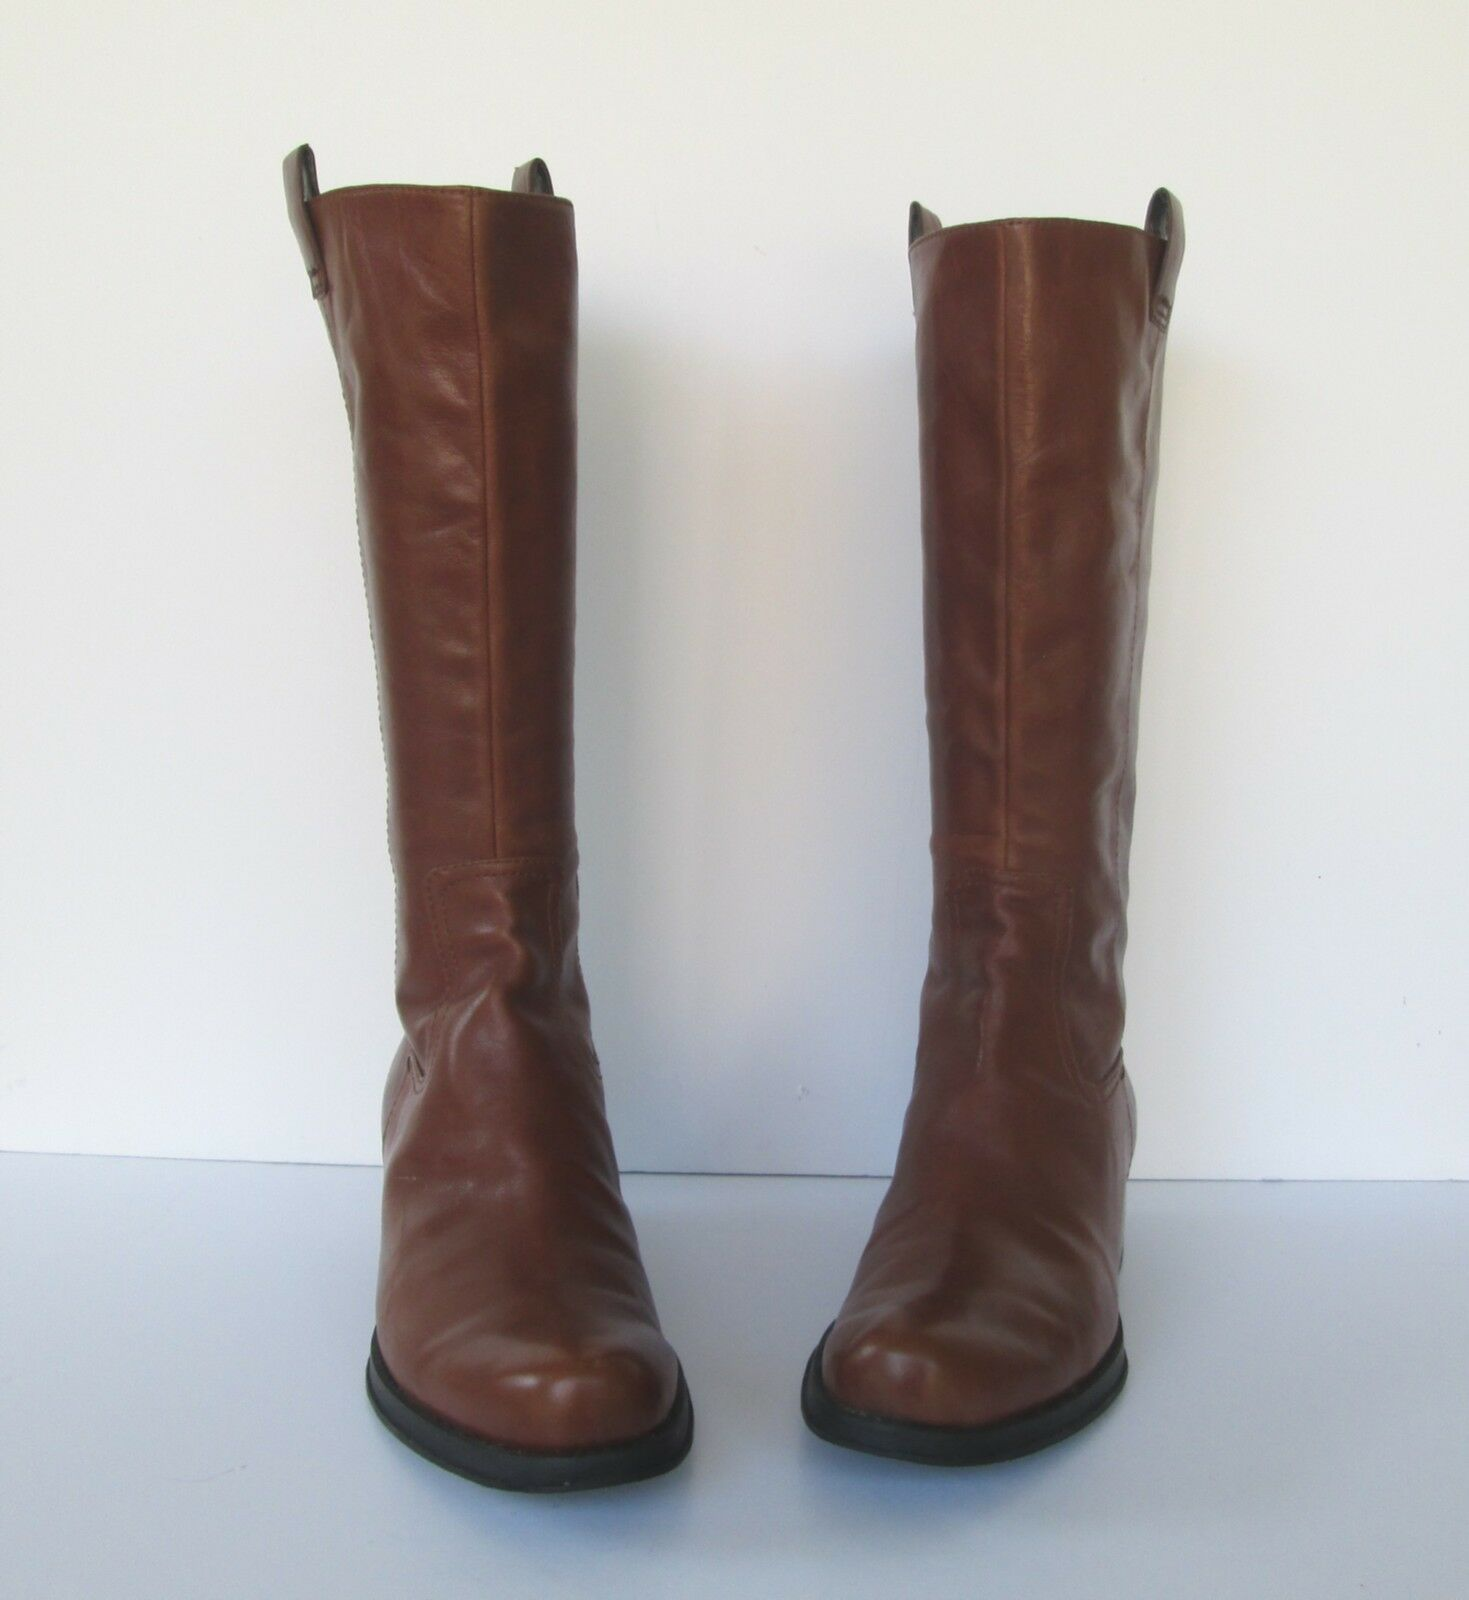 Nine West Damenschuhe Lovely Camel Braun Leder Leder Leder Knee High Riding style Stiefel 10 M 4f407d